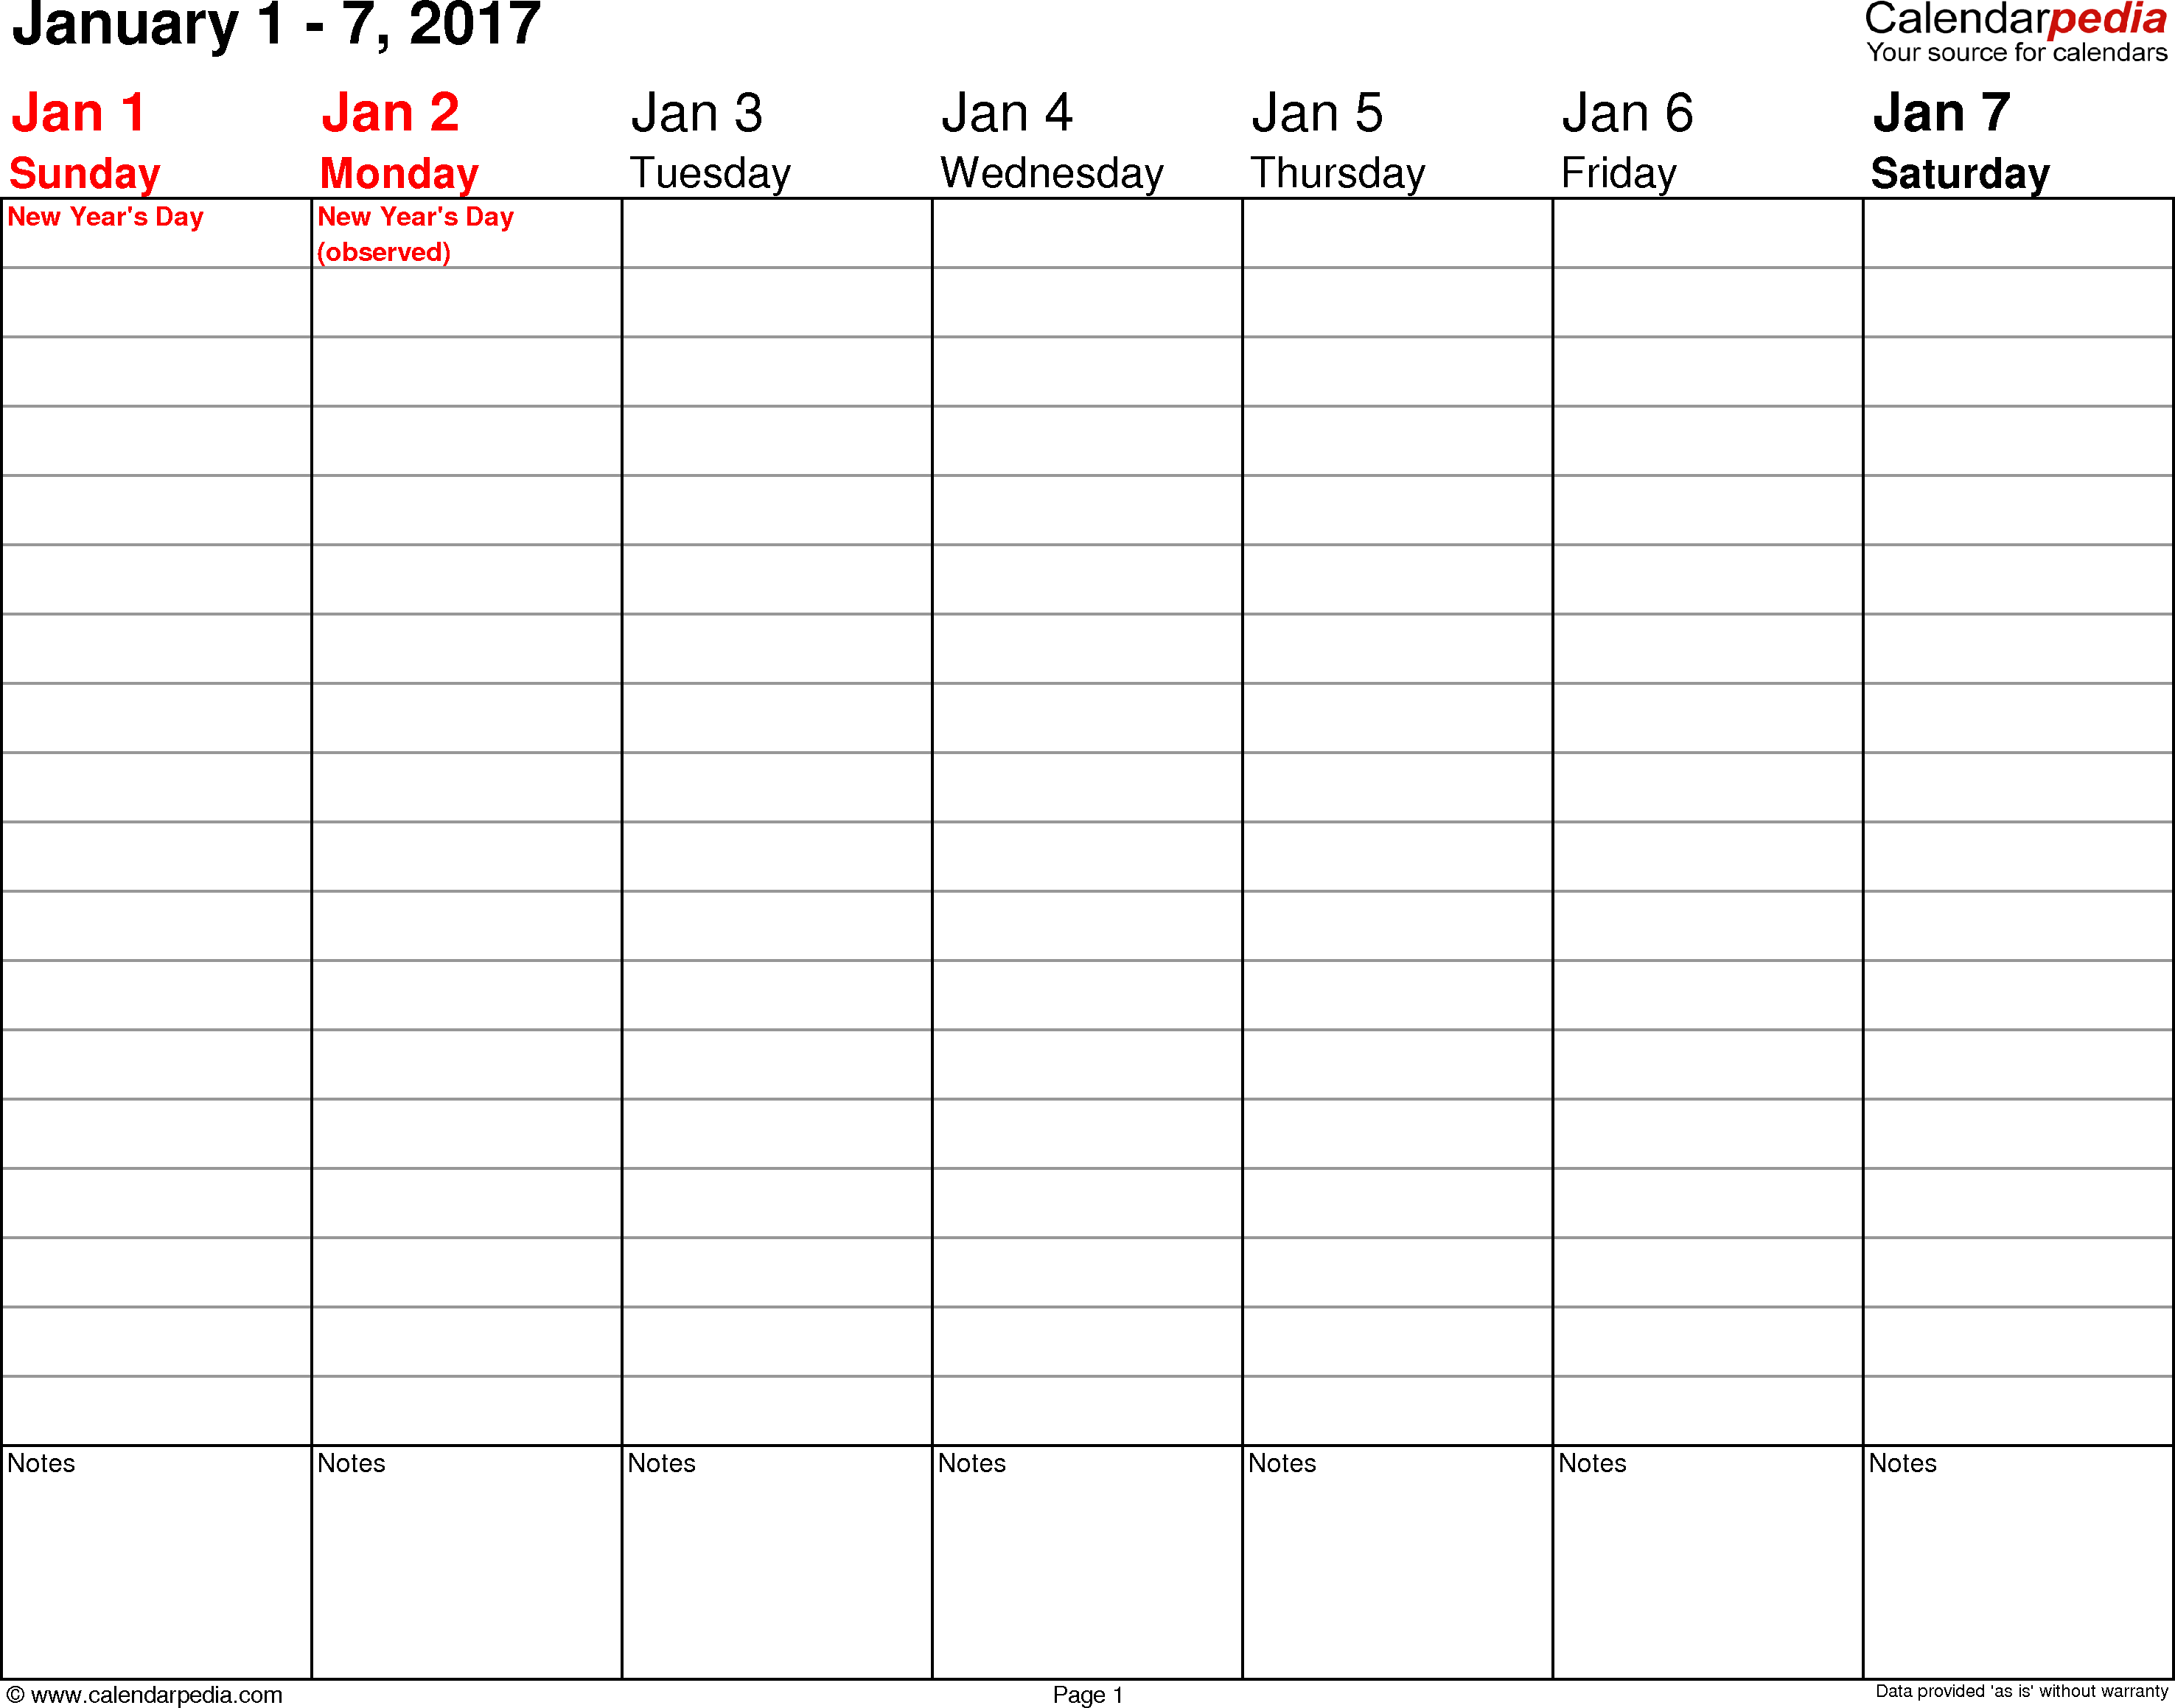 Weekly calendar 2017: template for PDF version 3, landscape, 53 pages, no time markings for flexible use